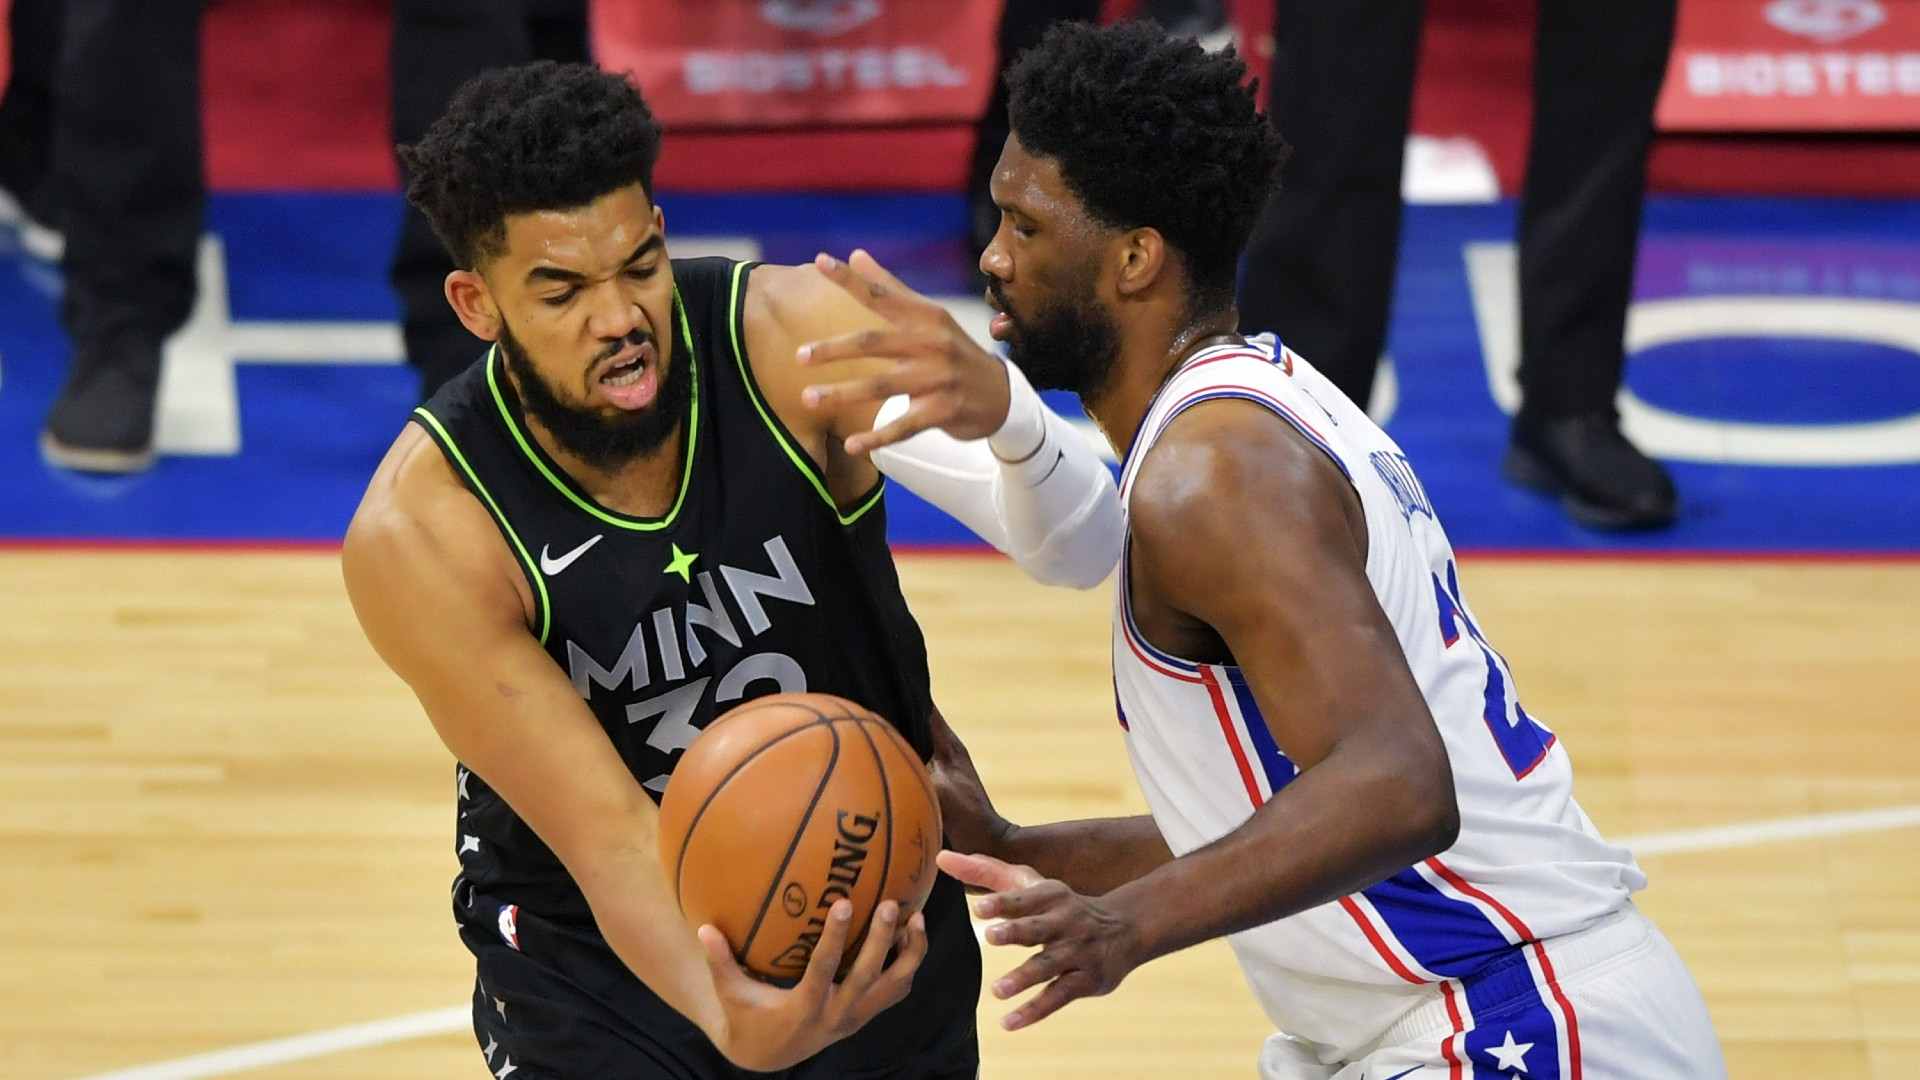 It didn't take long for 76's Joel Embiid and Timberwolves 'Karl-Anthony Towns to spark entertaining praise.